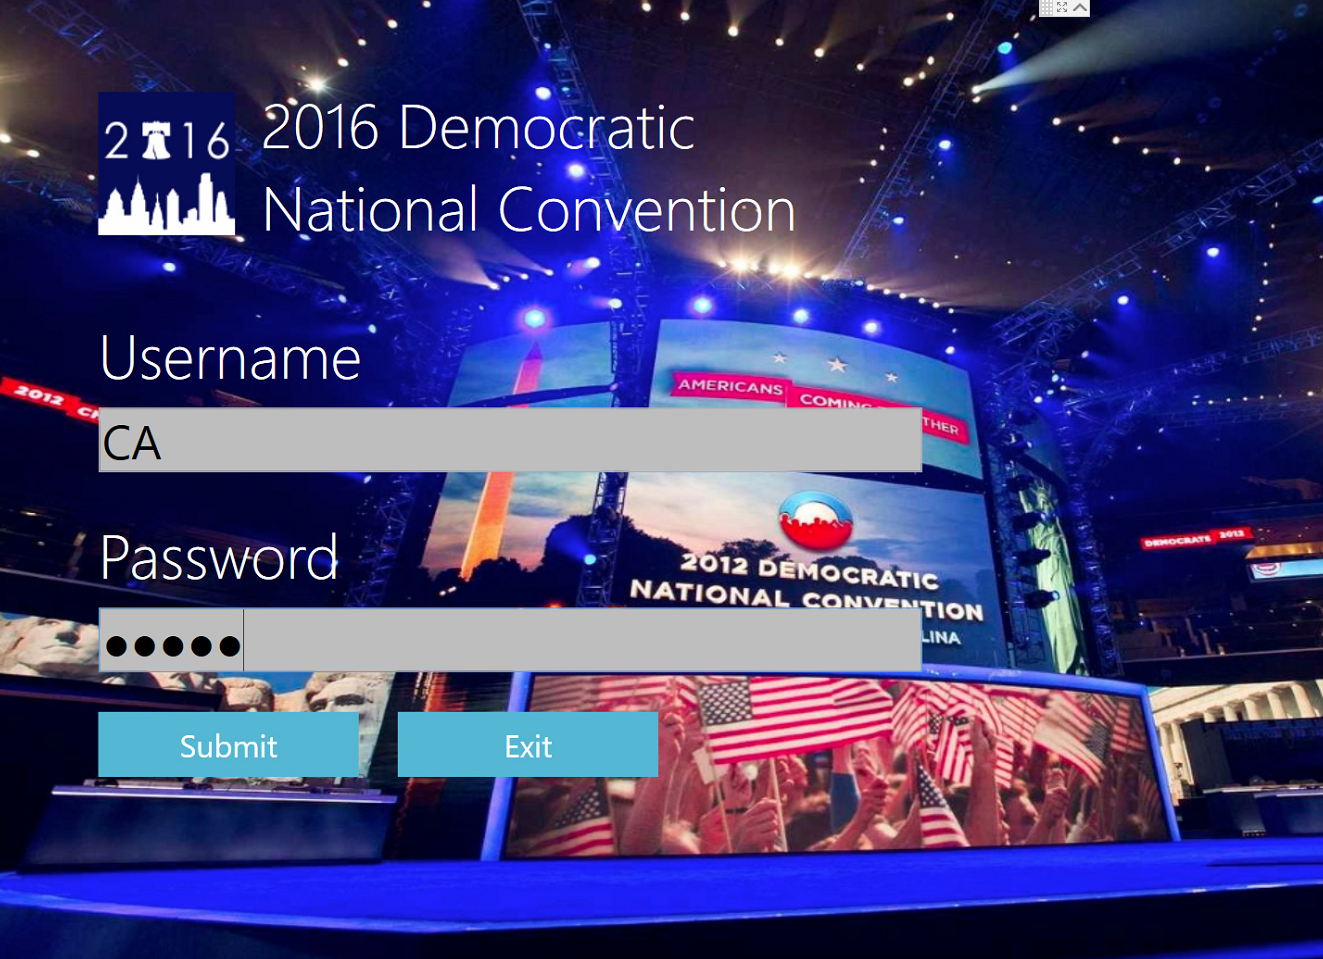 Democratic National Convention Voting App Log in